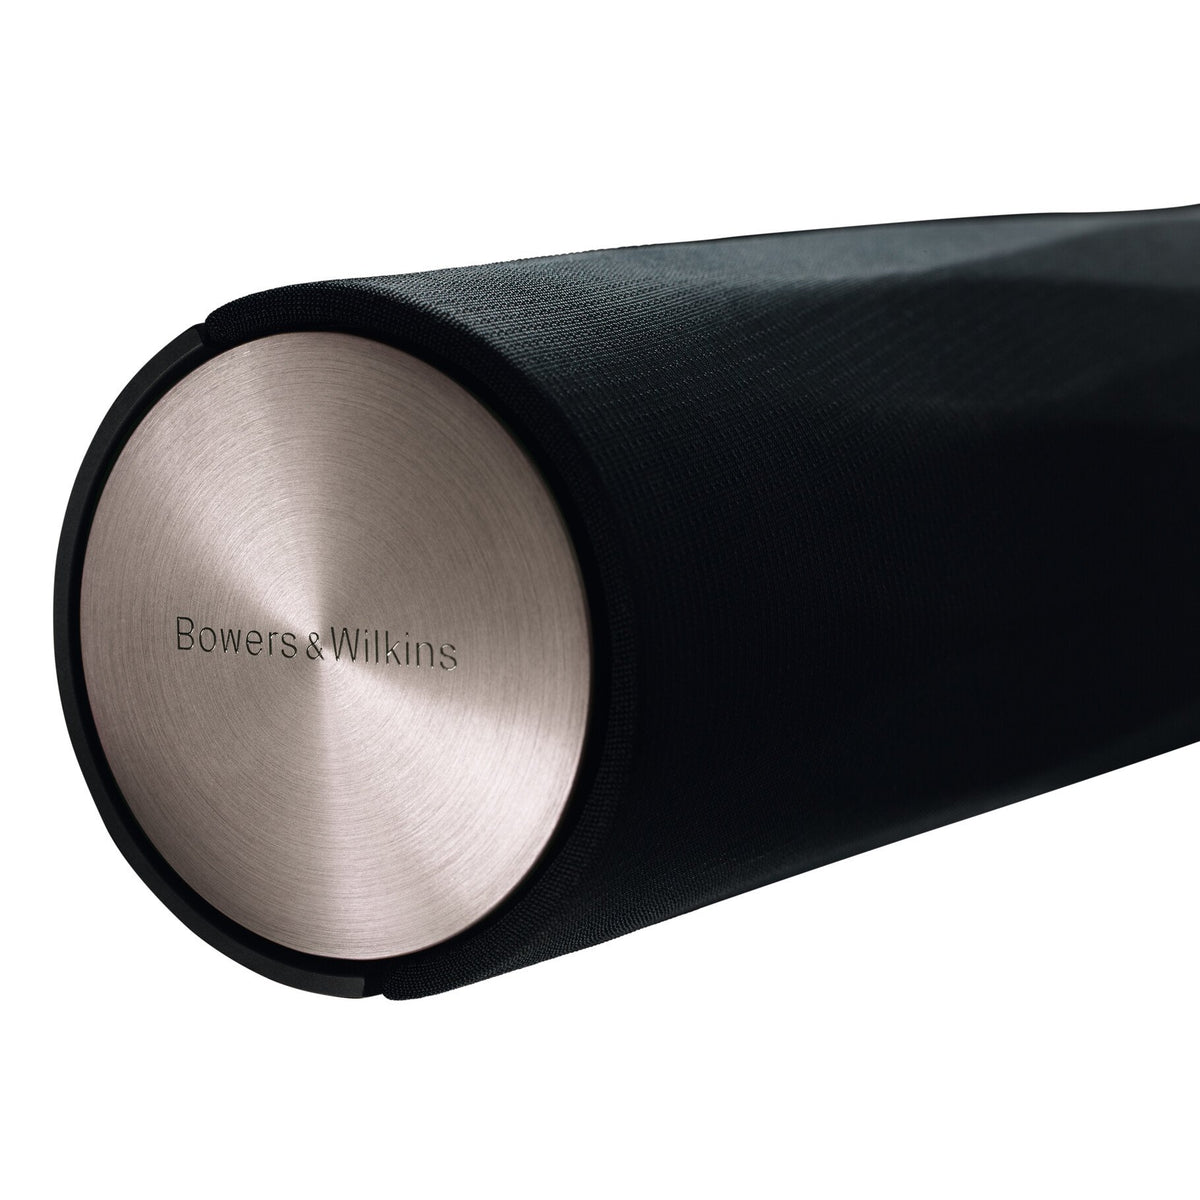 Bowers & Wilkins Formation Sistema 3.1